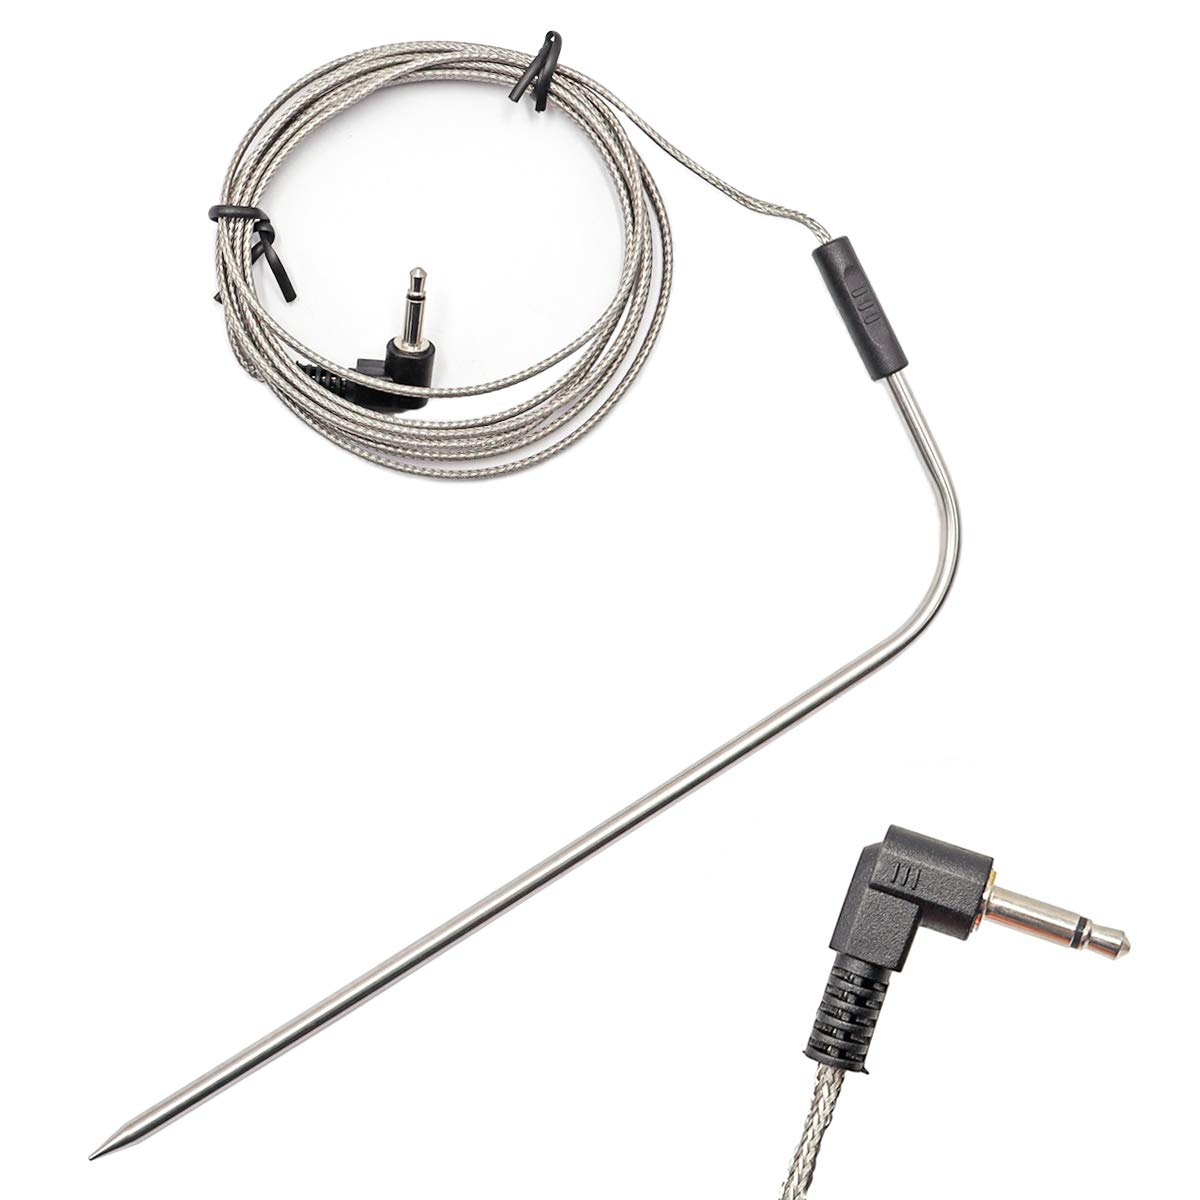 smseace 0.13in(3.5mm) Plug Waterproof BBQ Meat Thermometer Probe Replacement . Compatible with Traeger BBQ Grills. TZ-3.5-185-2